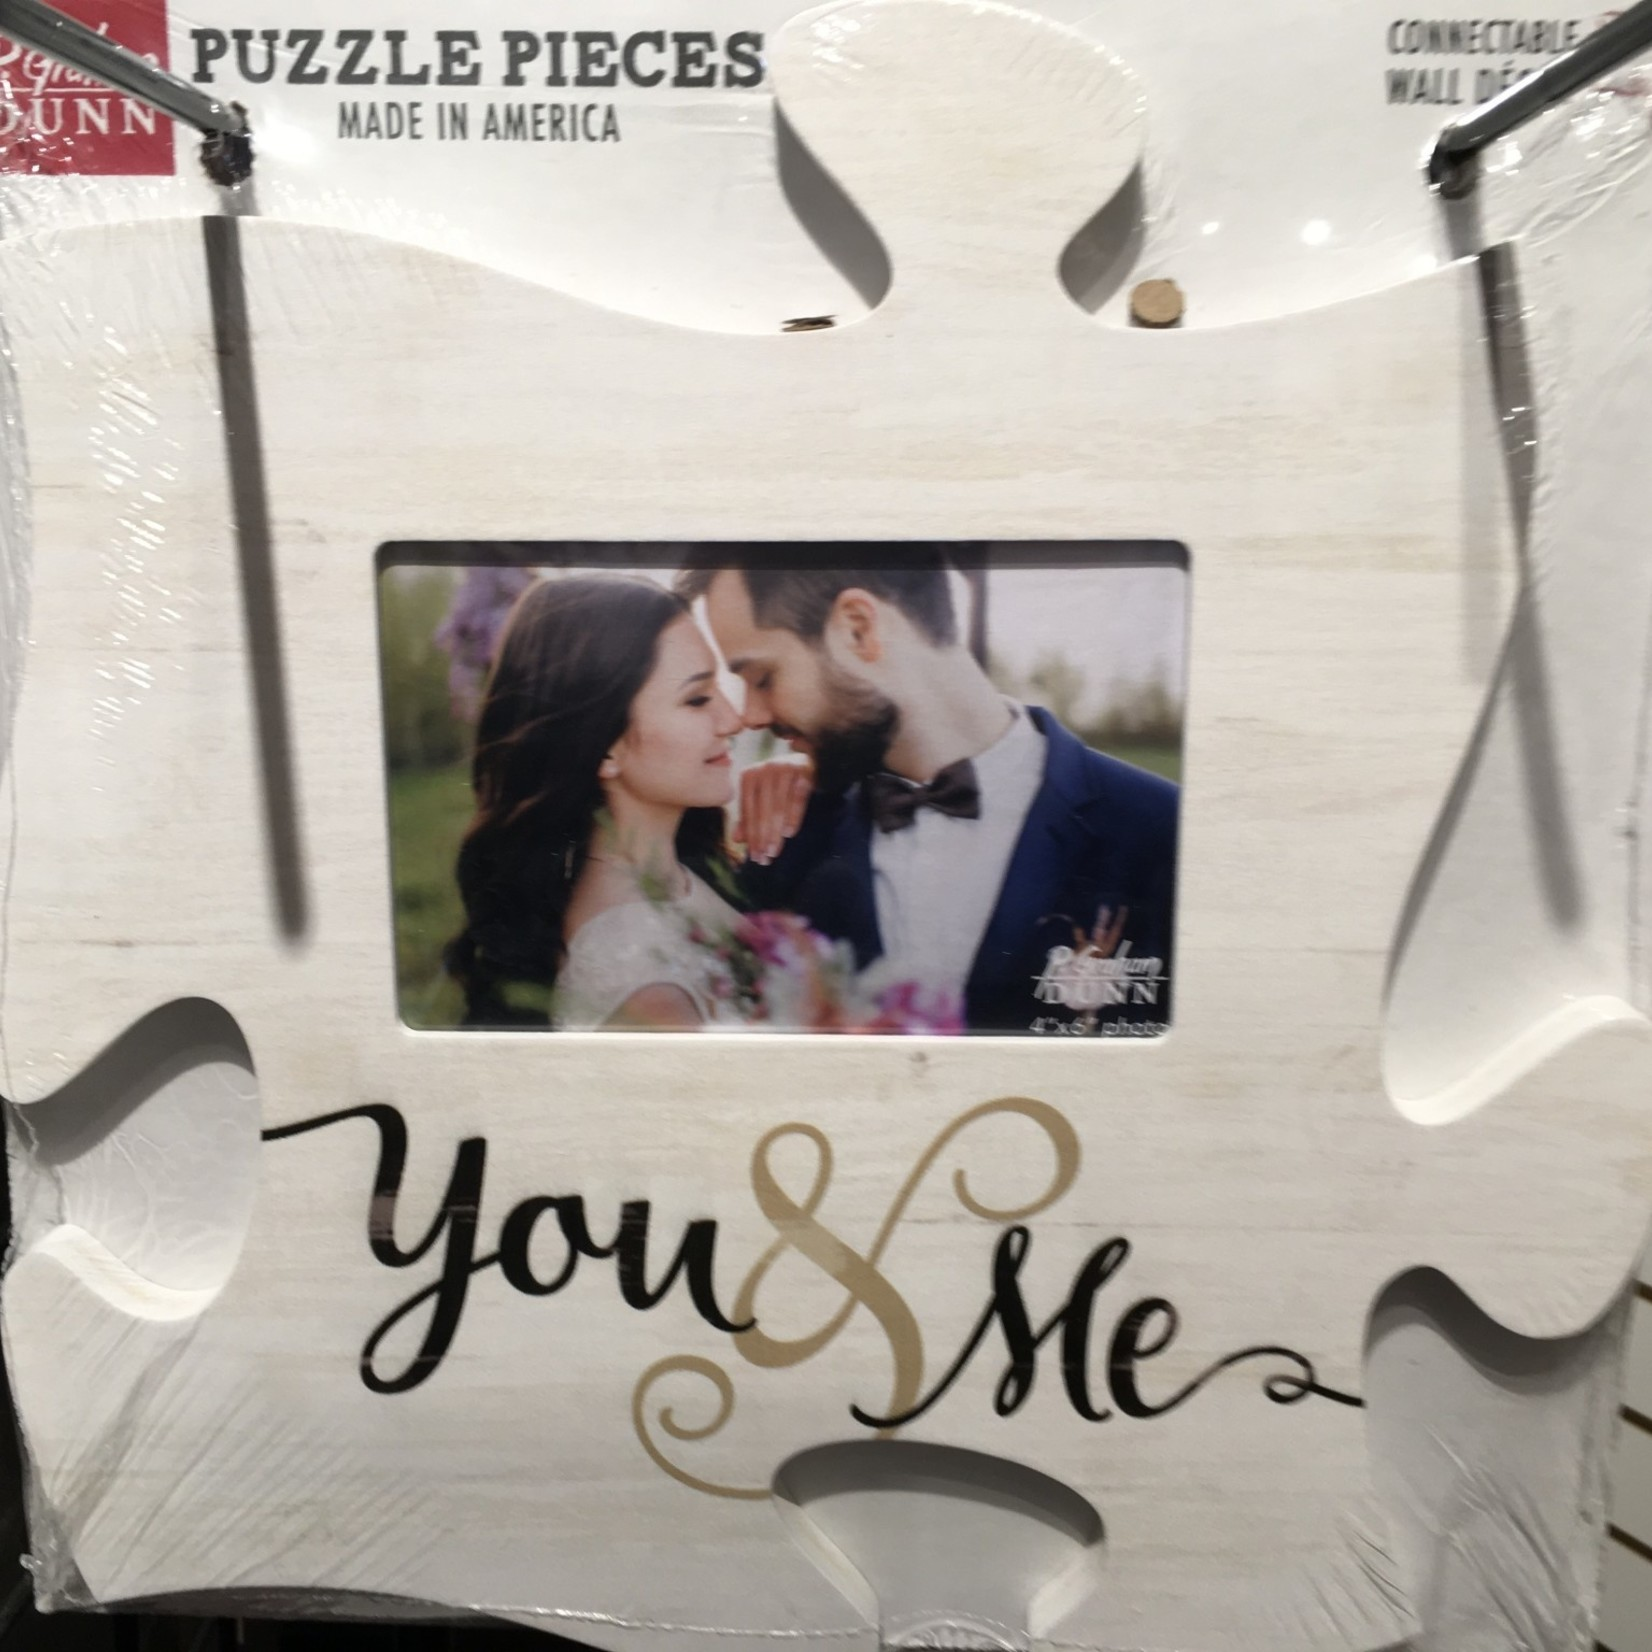 Puzzle - You & Me